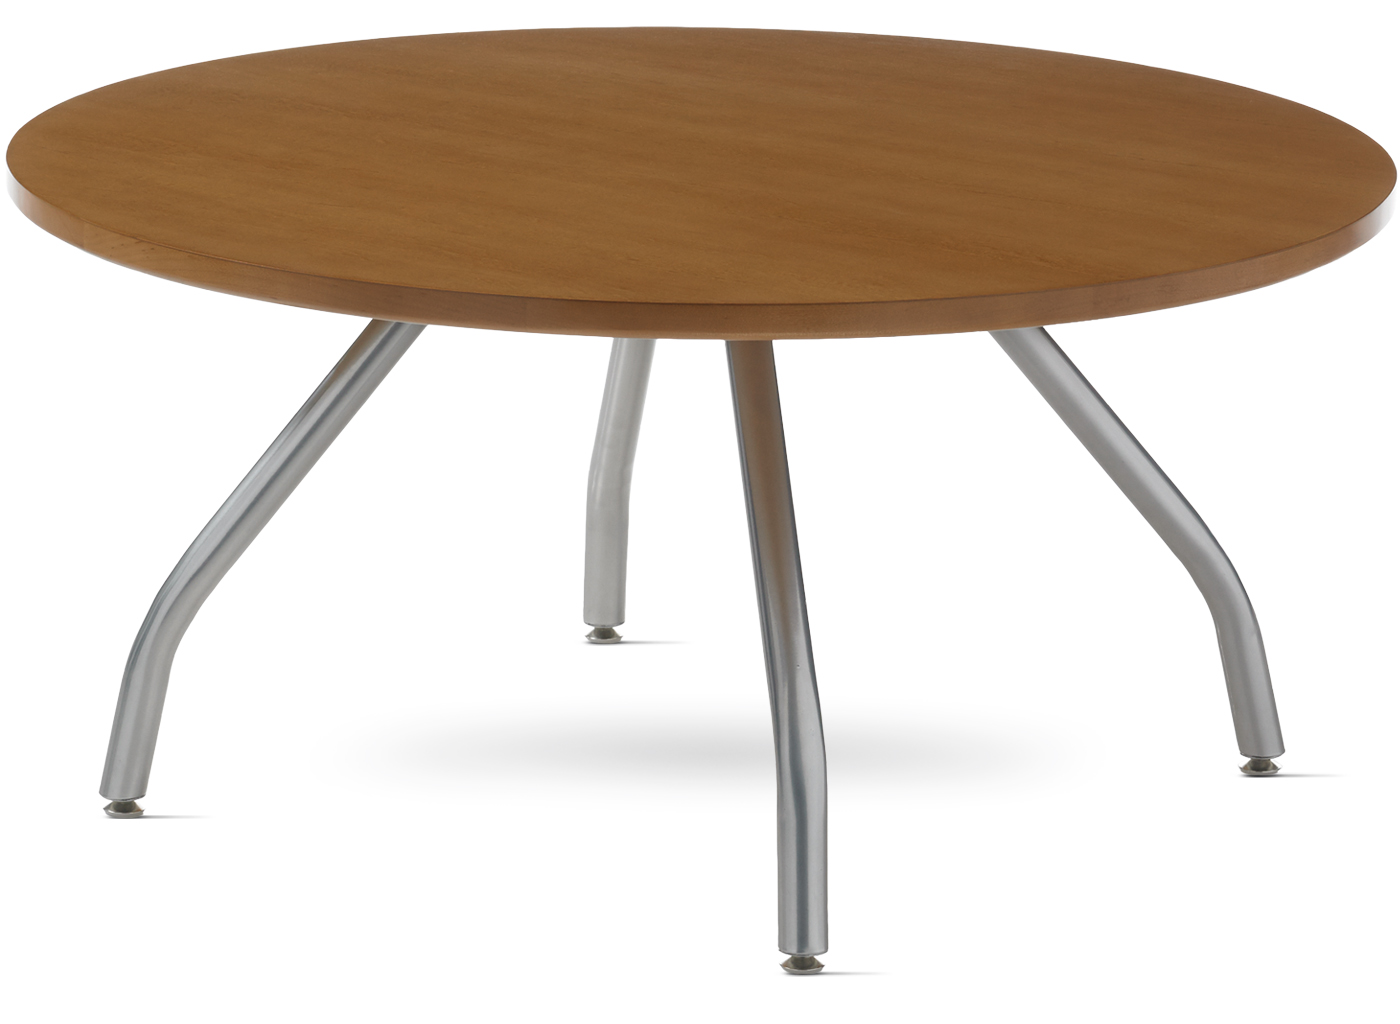 Allure Round Cocktail Table 6470 20 1400x1024px 150dpi